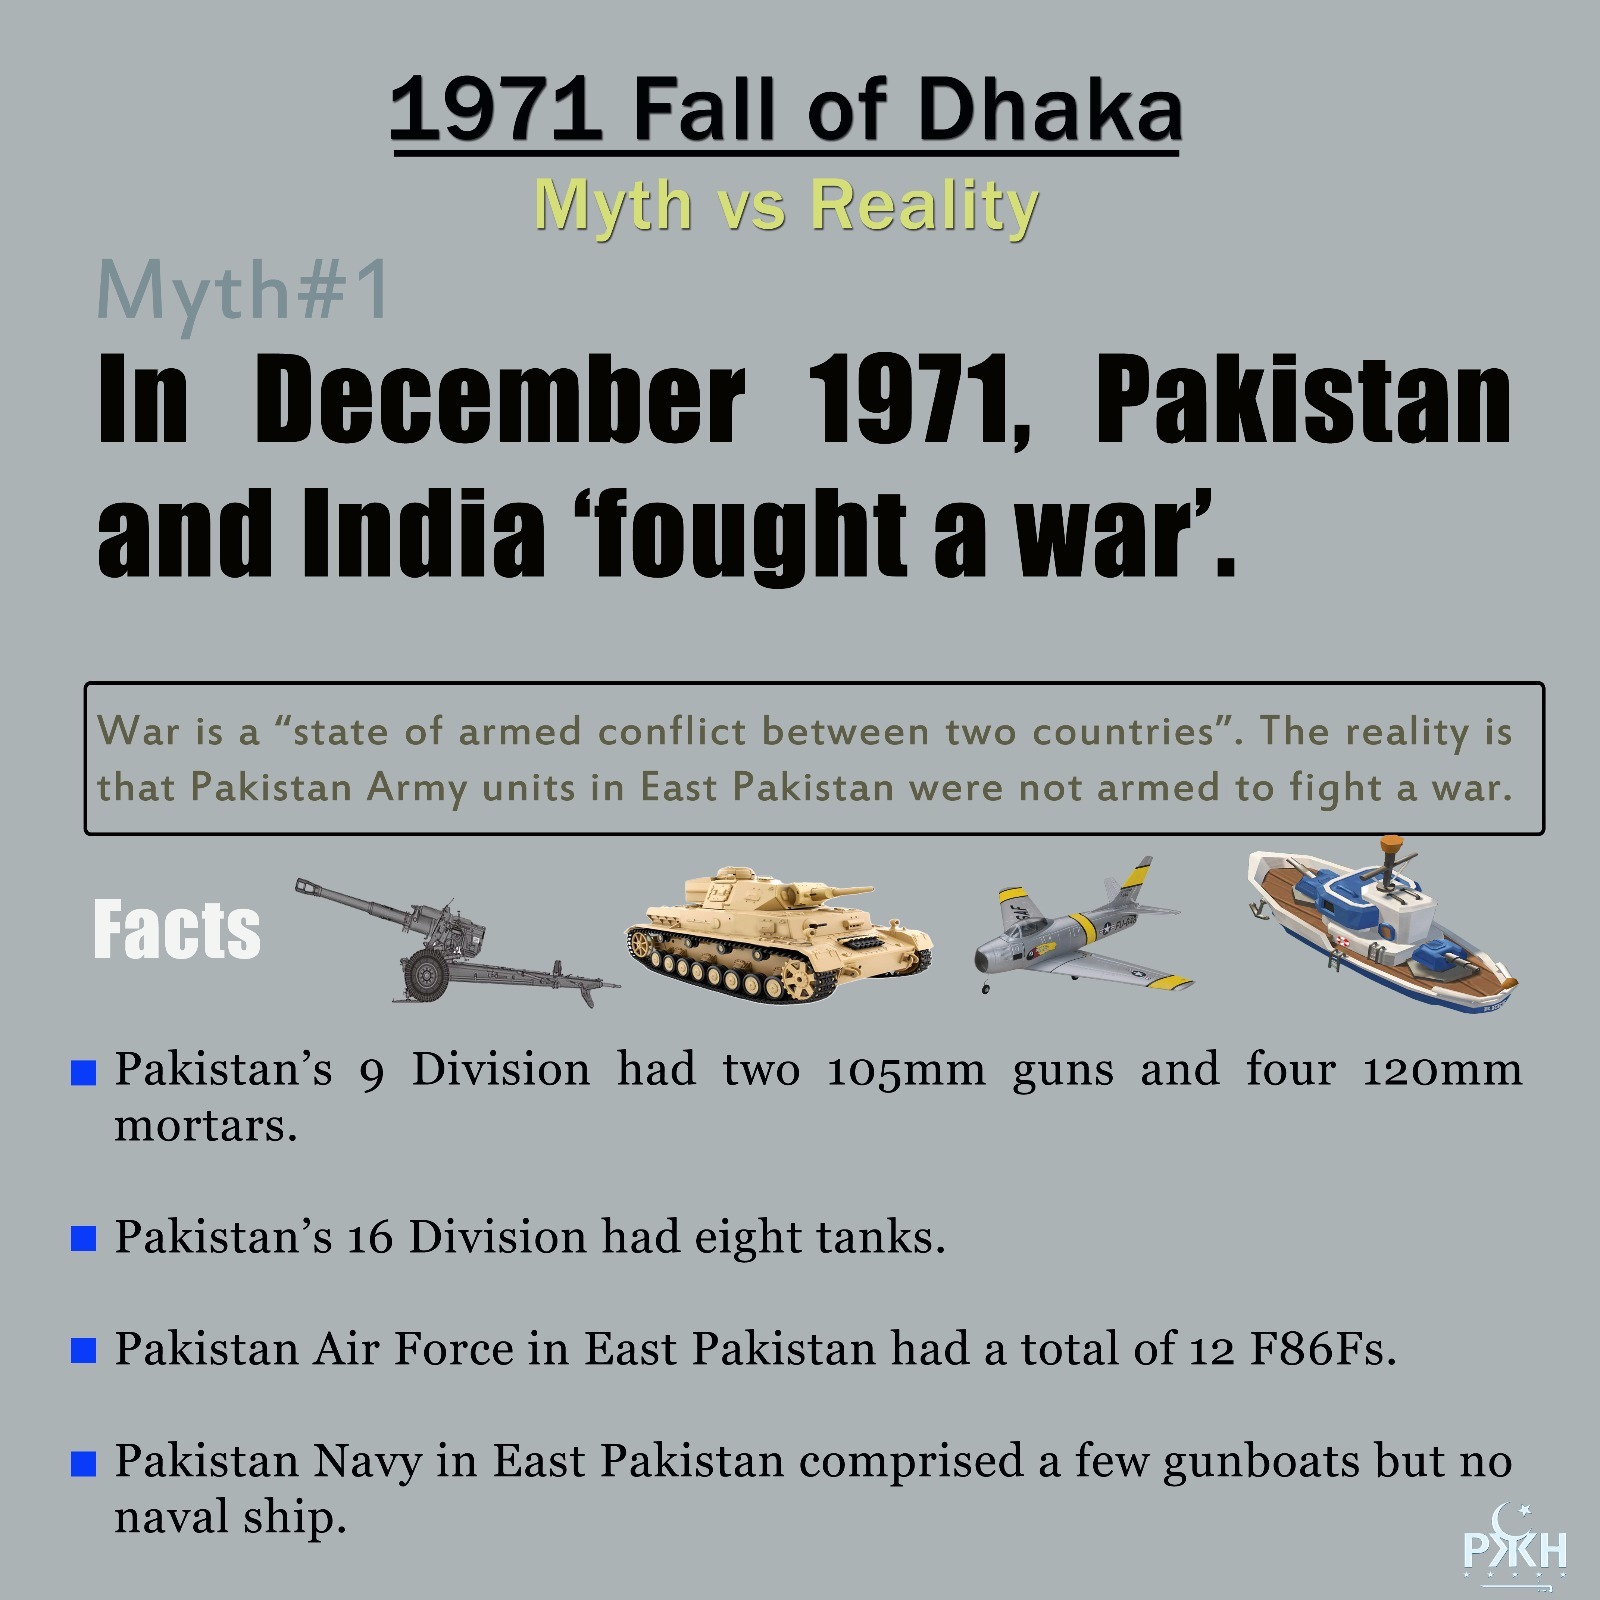 1971 fall of dhaka, myth vs reality. myth1